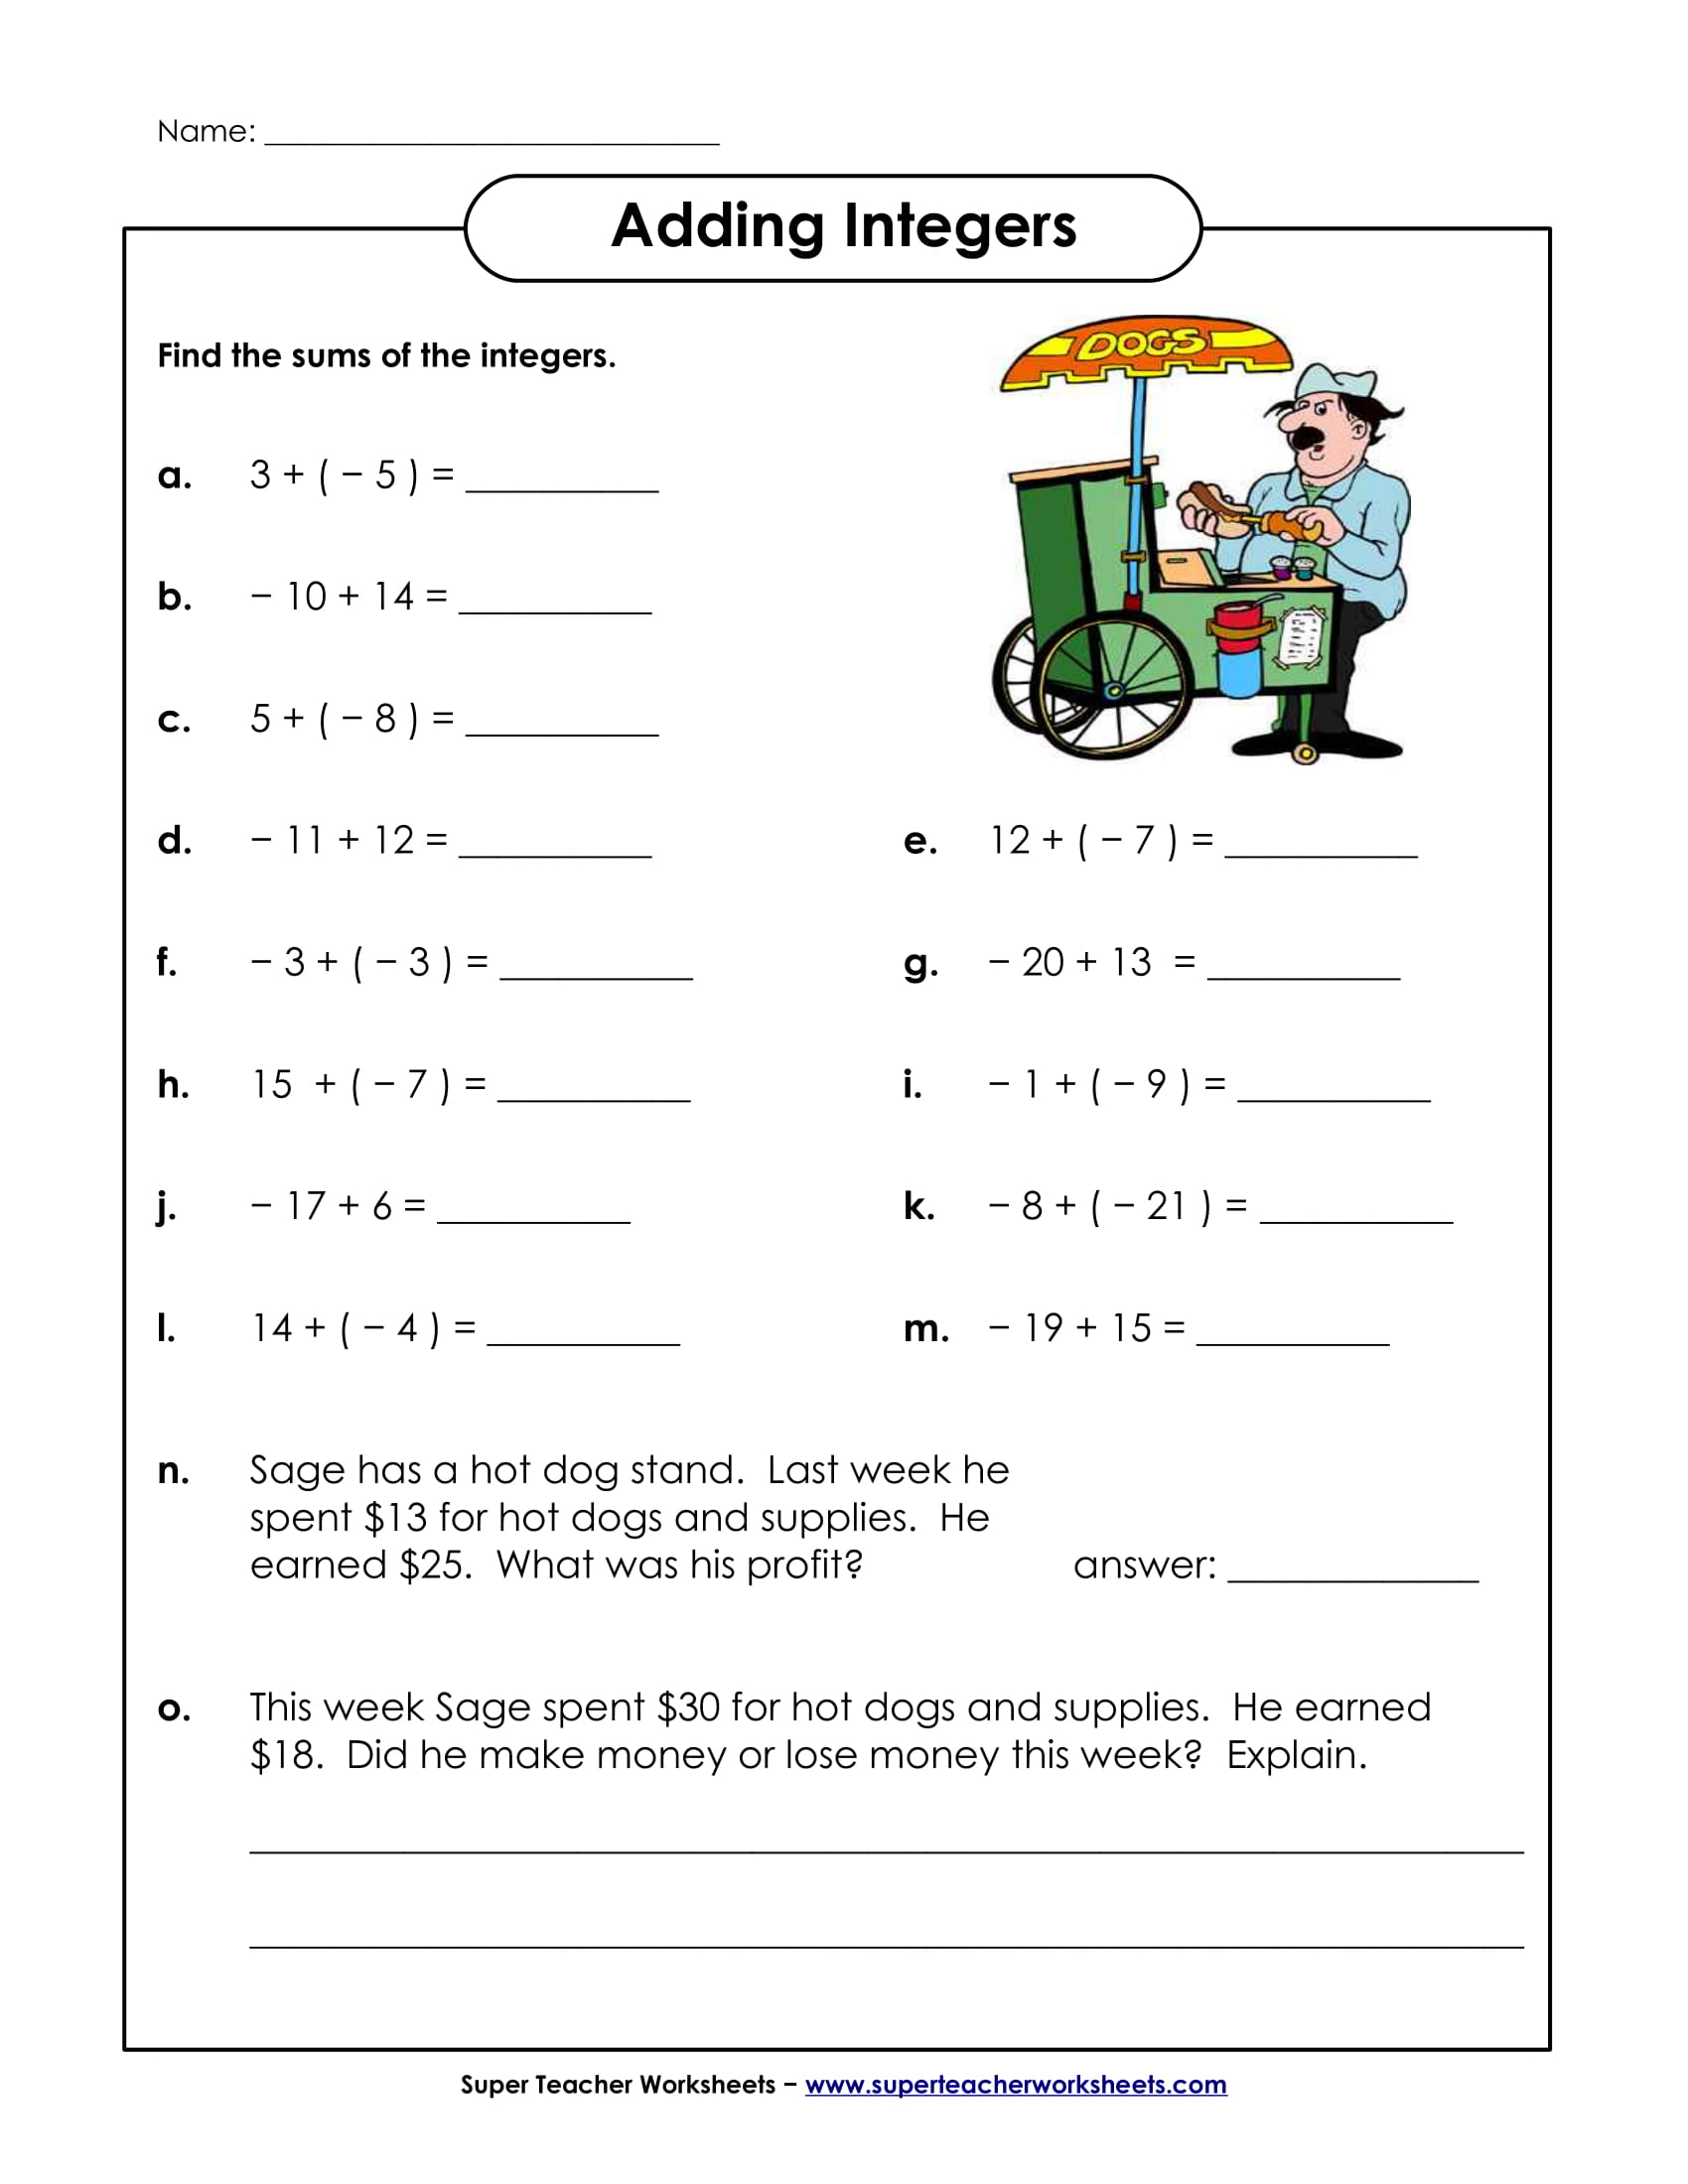 hight resolution of Adding Integers Worksheet Scoreboard   Printable Worksheets and Activities  for Teachers